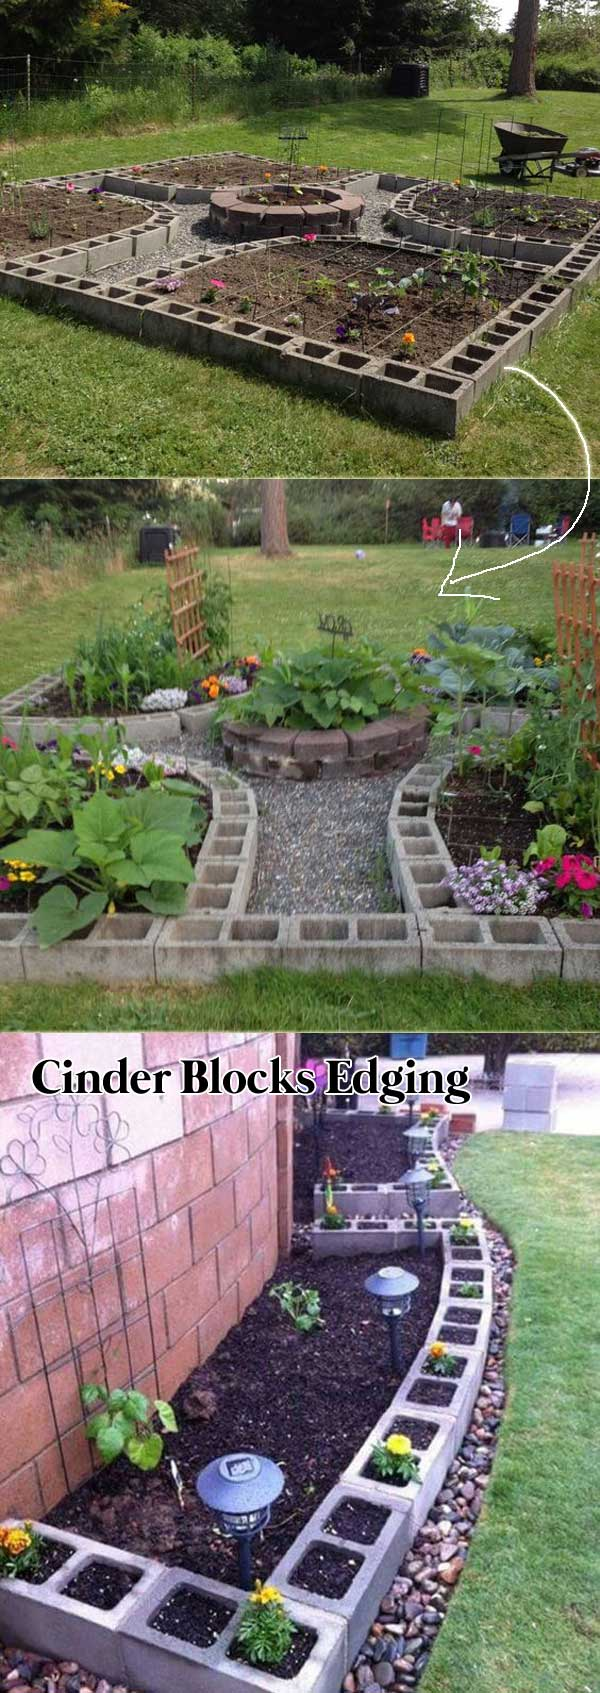 Line Your Garden Beds with Cinder Blocks